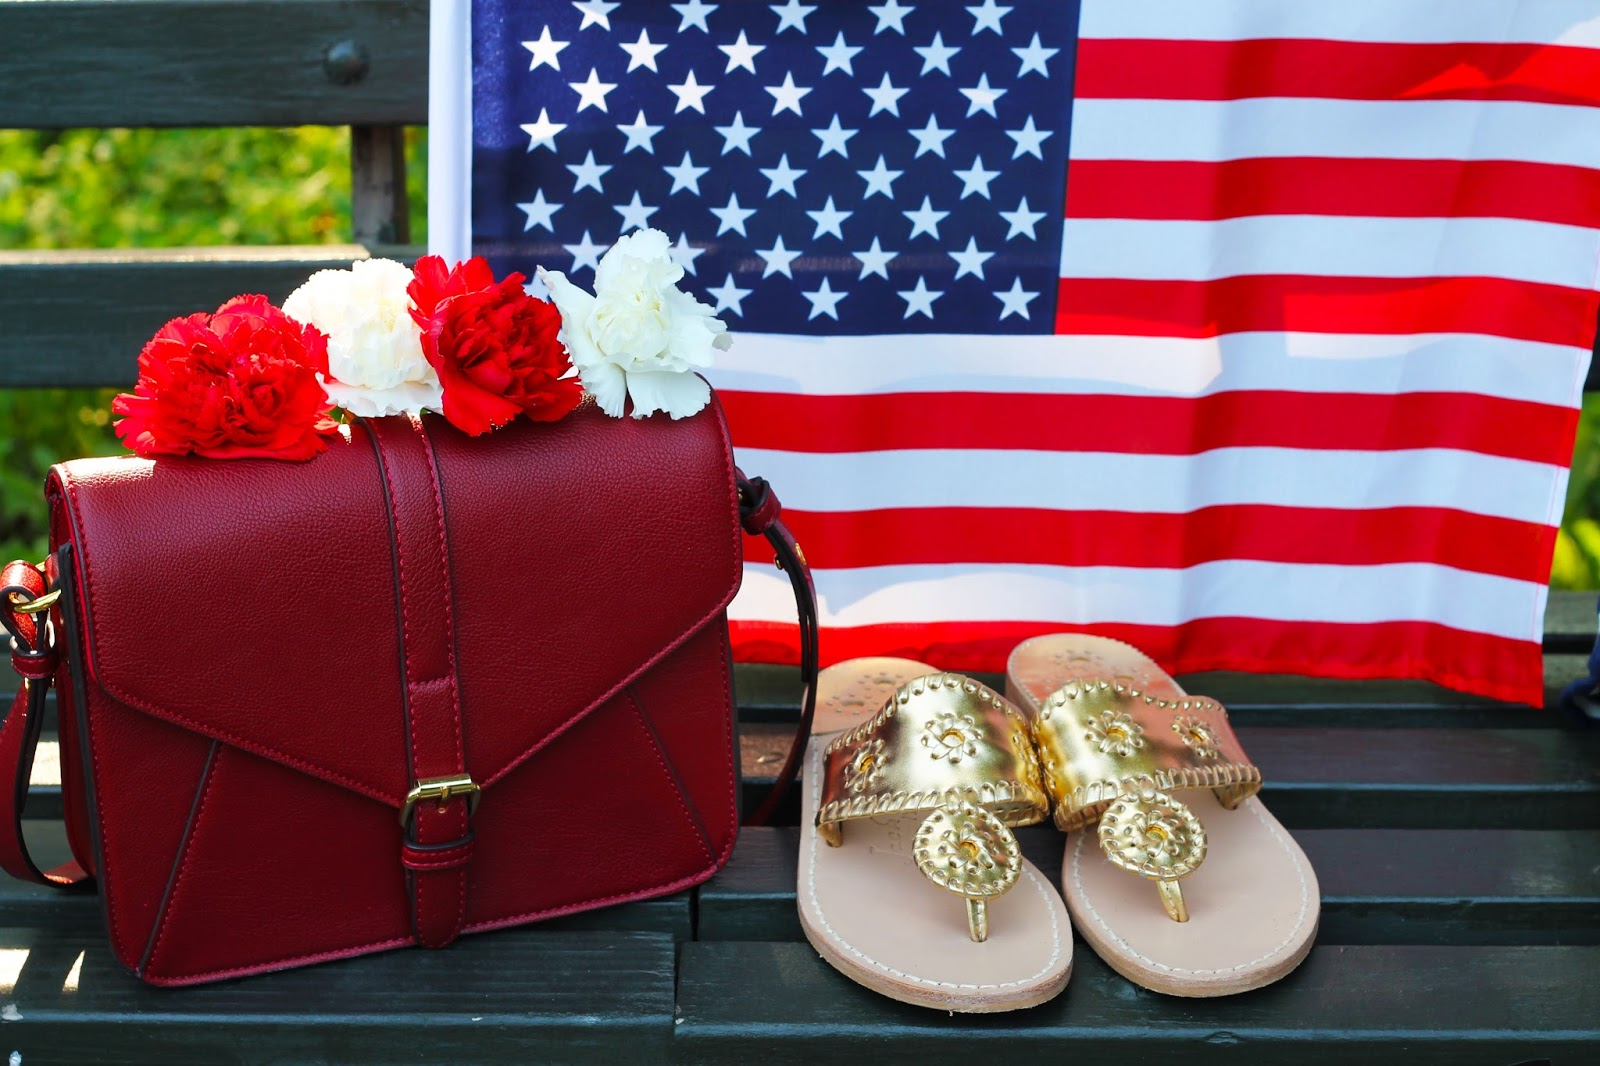 fourth of july, 4th of july, july fourth, july 4th, american, patriotic, stars, stripes, red, white, blue, gold, holiday, summer, oldnavy, jack rogers, lovemyjacks, marshalls, fabfound, crew, hm, aldo, accessories, aldo accessories,fun, cool, fashion, blogger, petite, woman, teen, women, outfit, ootd, american flag, sandals, dress, navy blue dress with white stripes, bracelets, purse, new york, weekend, friday, tgif, niece, ny, new york city, style, inspo, park, july, latina, girl, dominican, dominican blogger